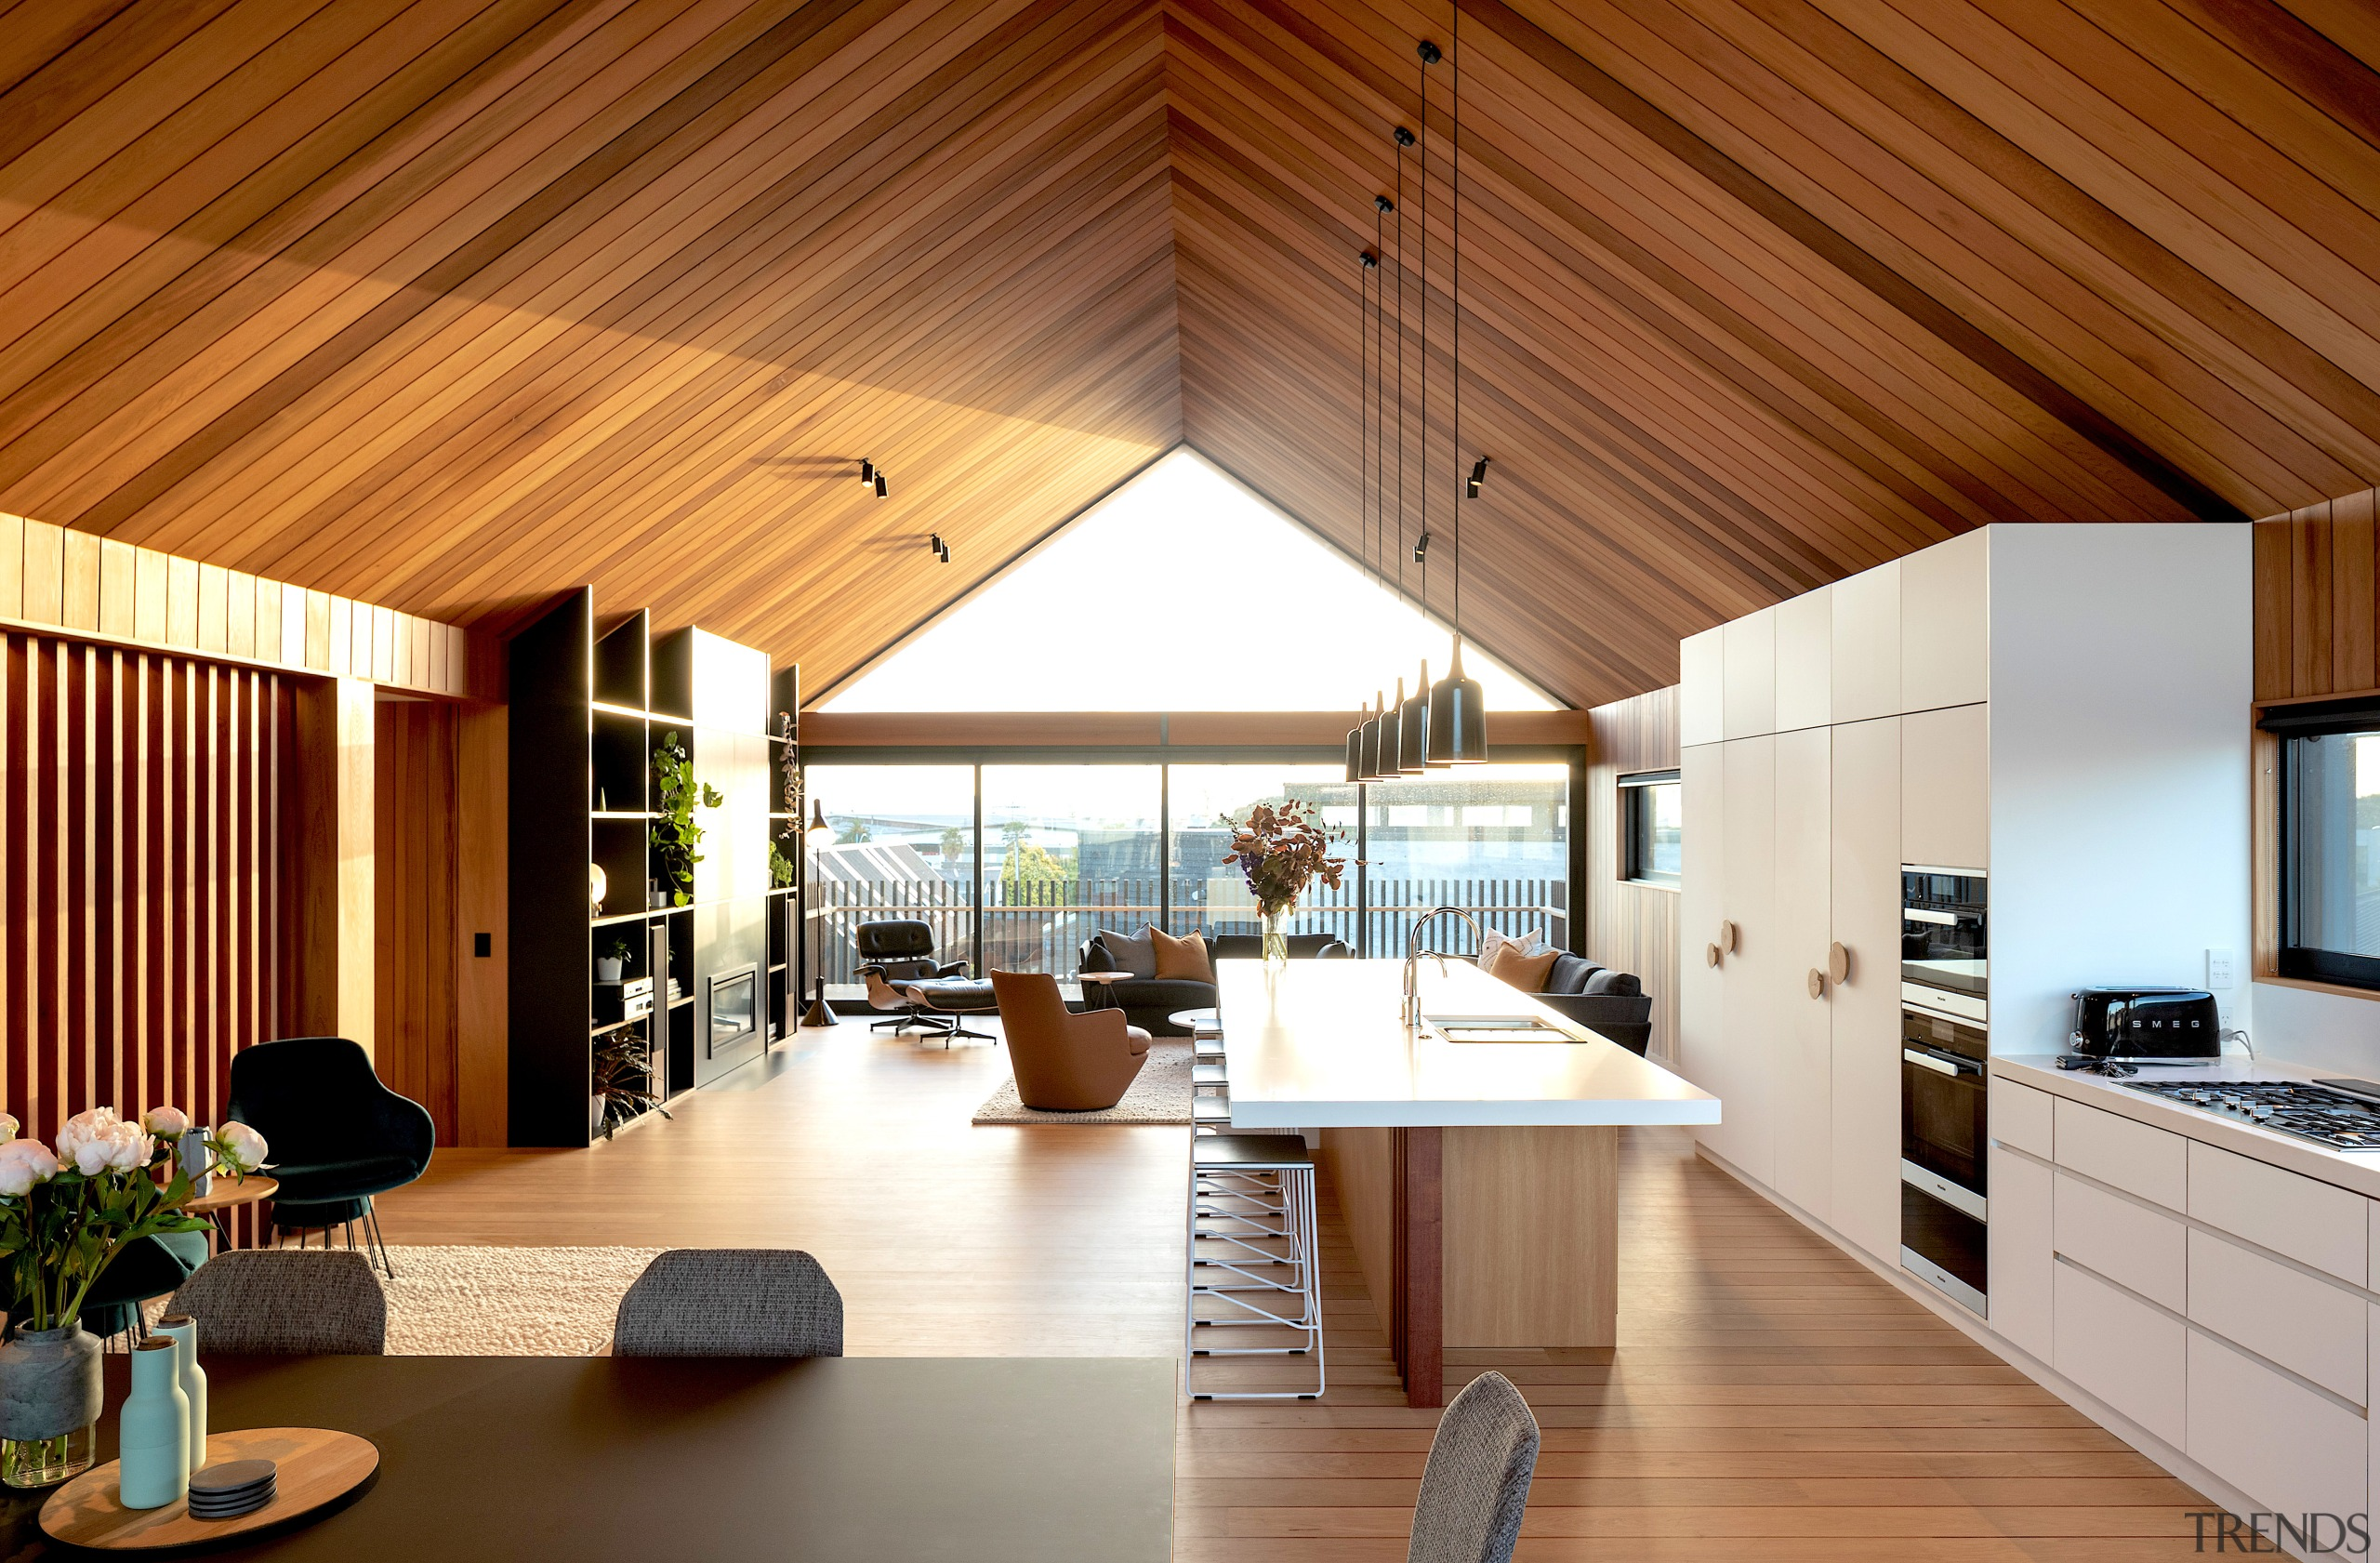 From an architectural perspective this home is designed